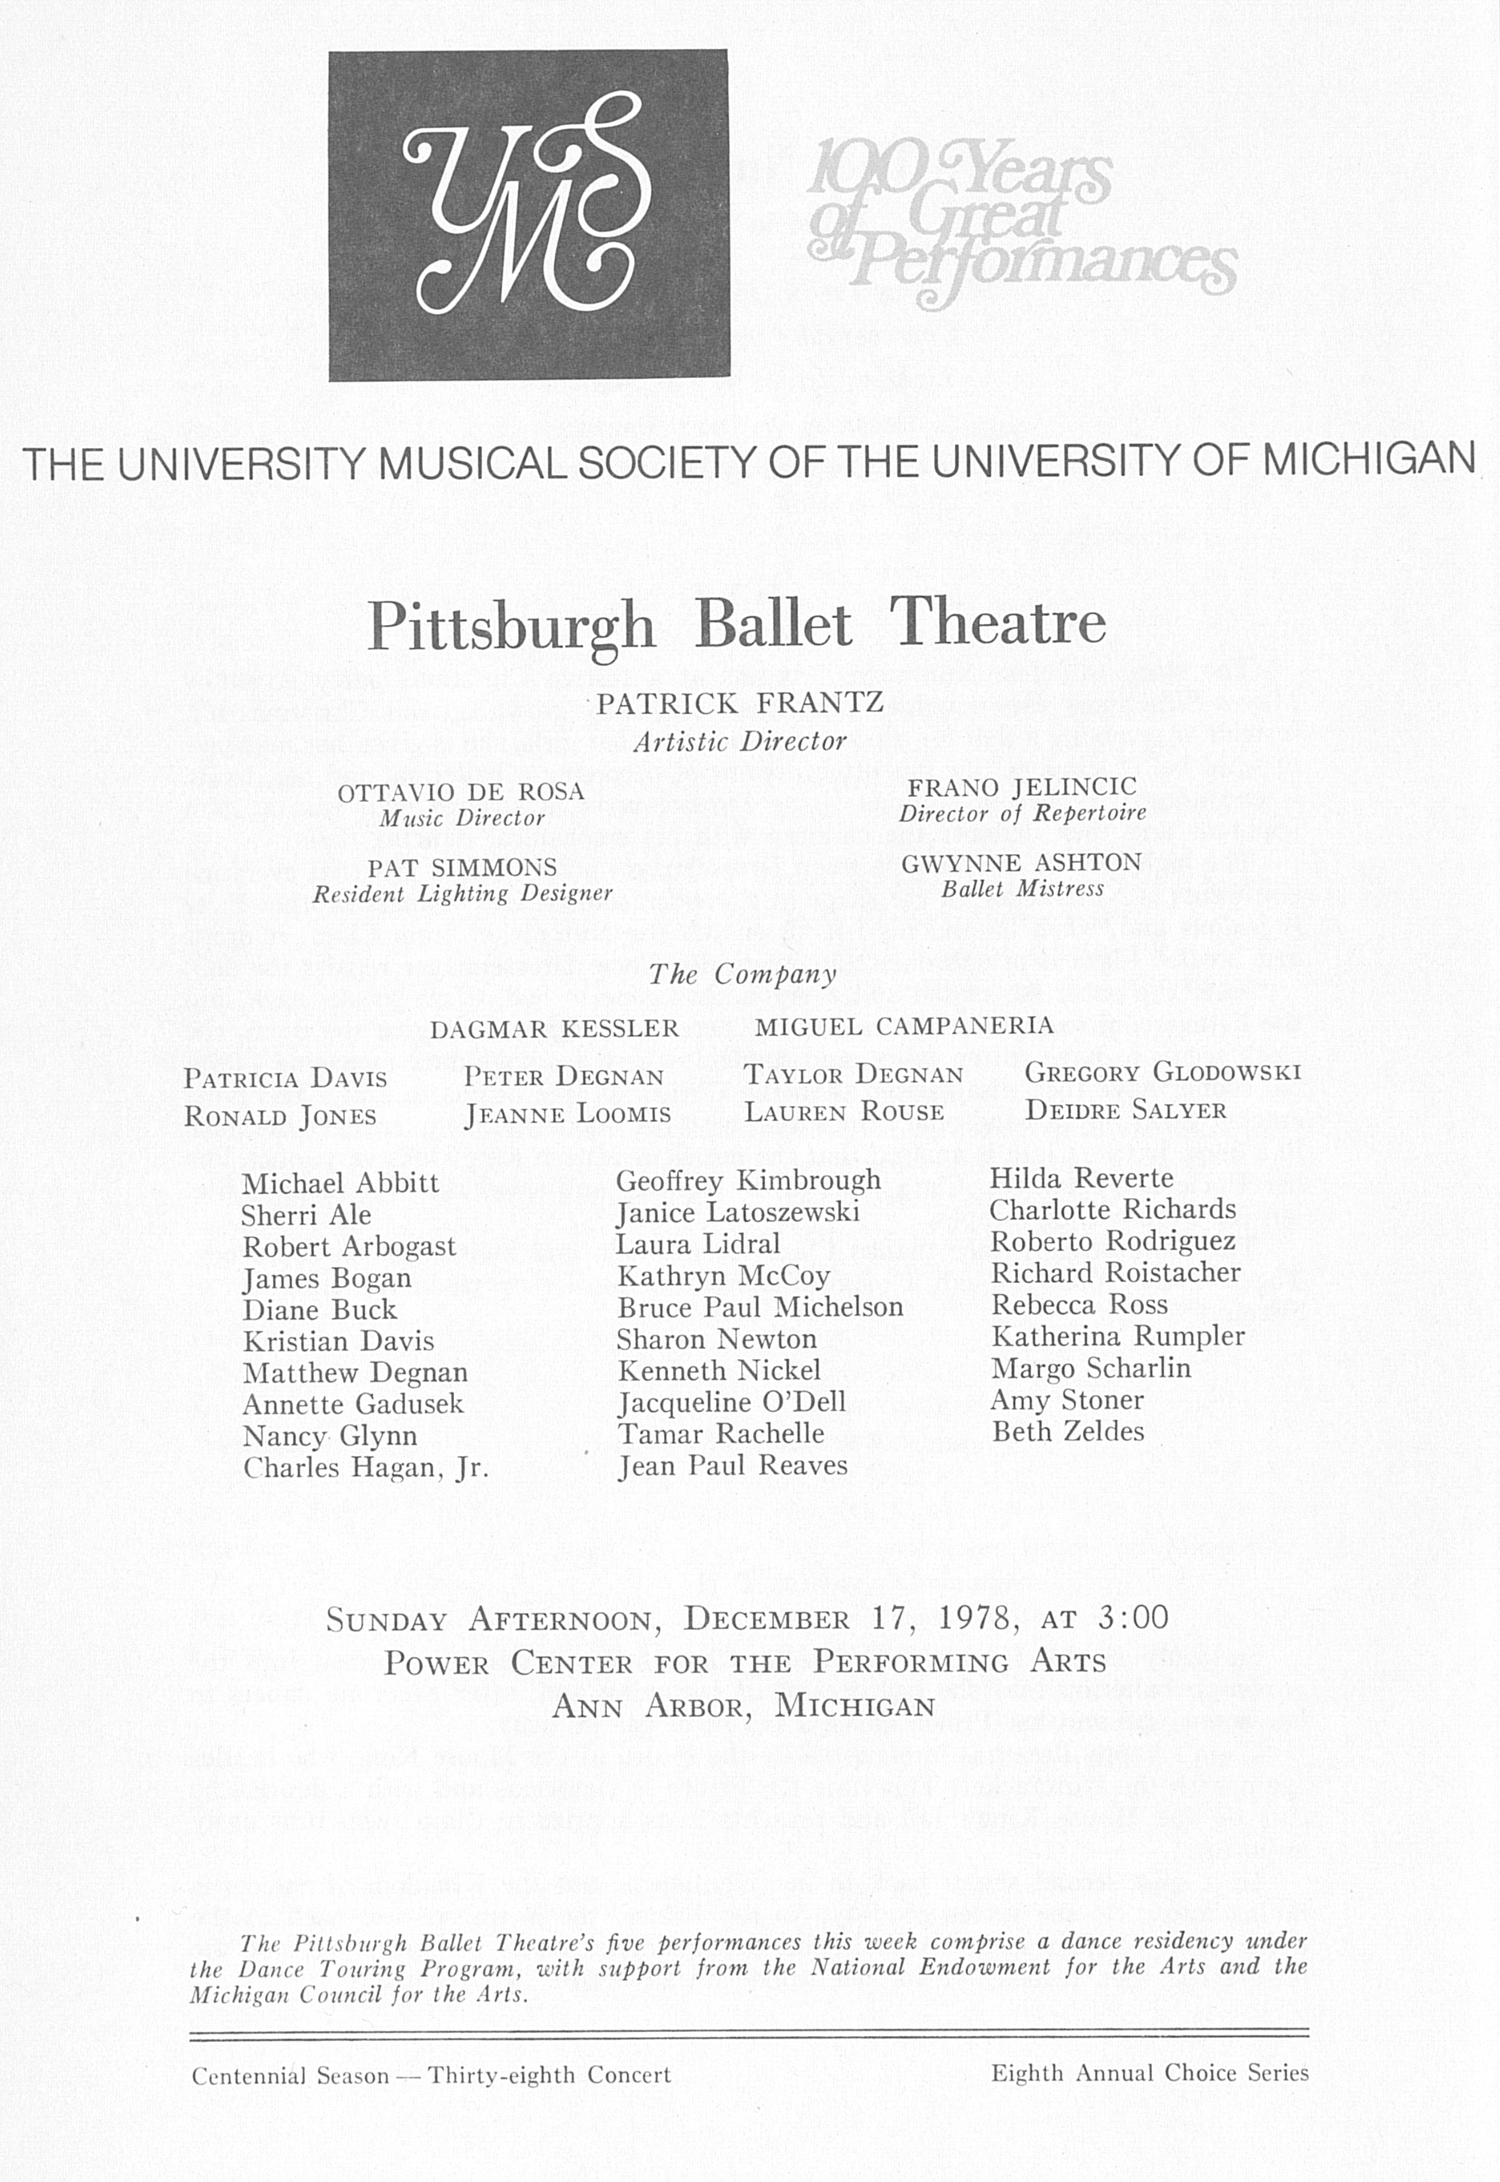 UMS Concert Program, December 17, 1978: Pittsburgh Ballet Theatre -- Patrick Frantz image